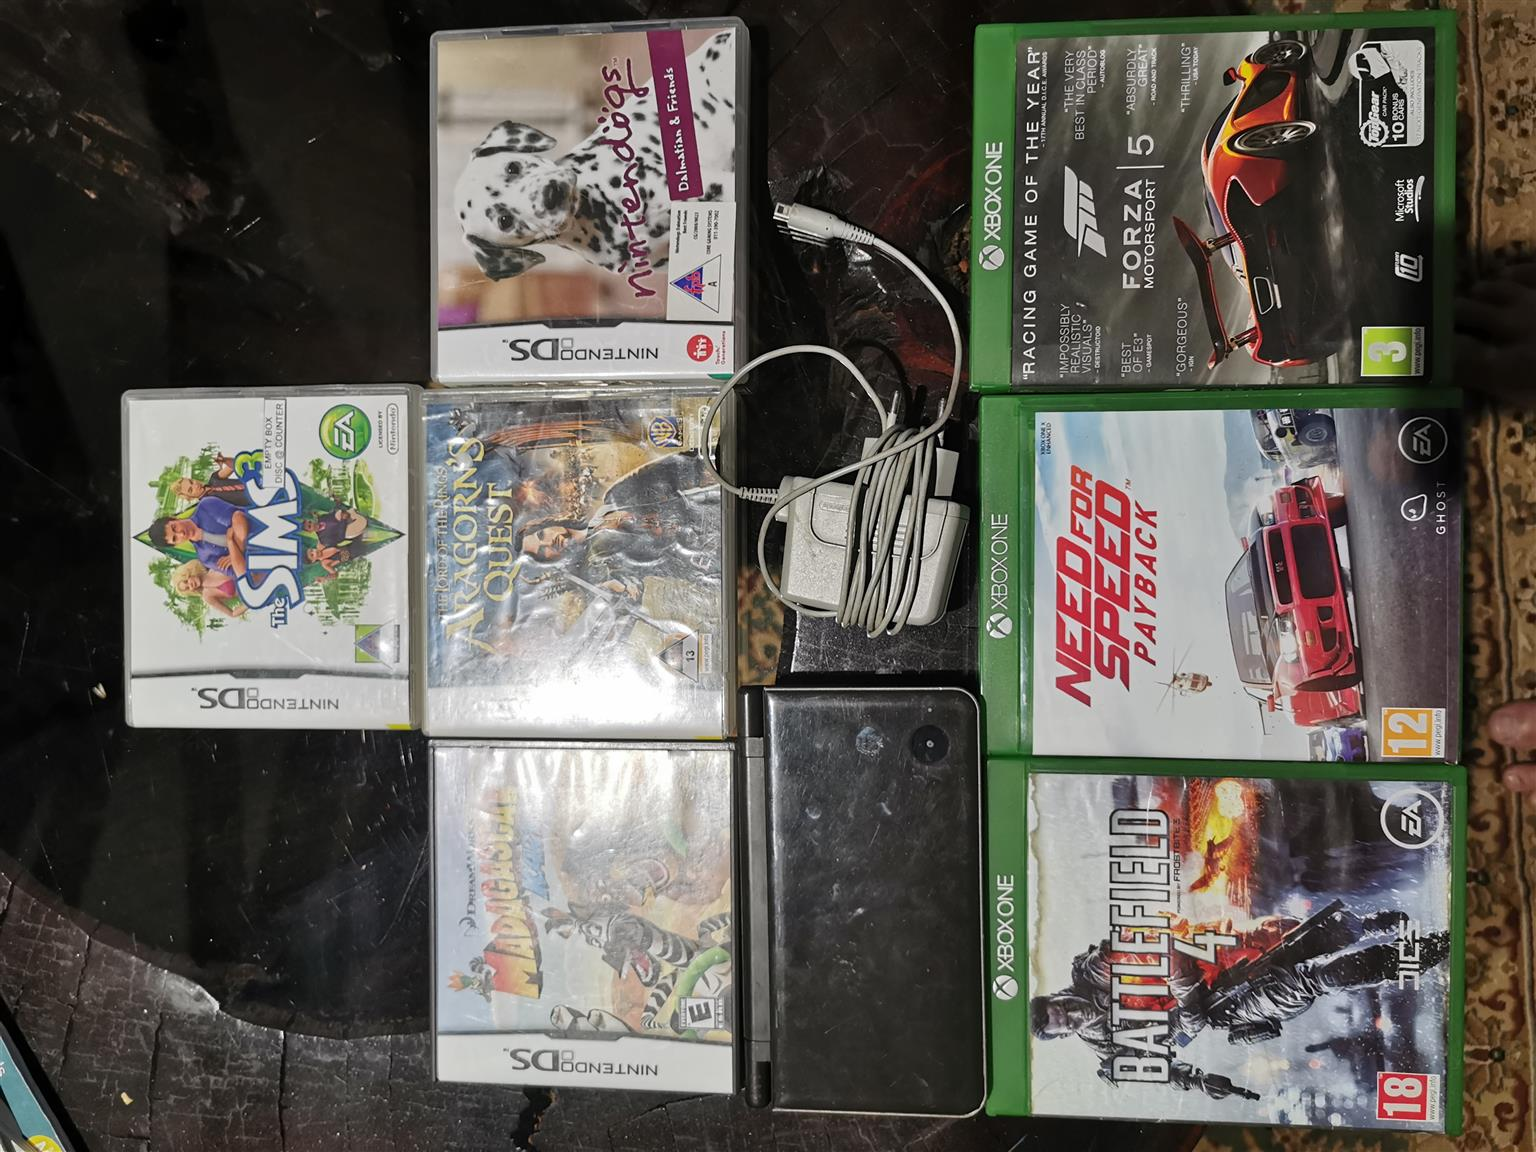 Nintendo DSI XL with 4 Nintendo games and 3 Xbox one games